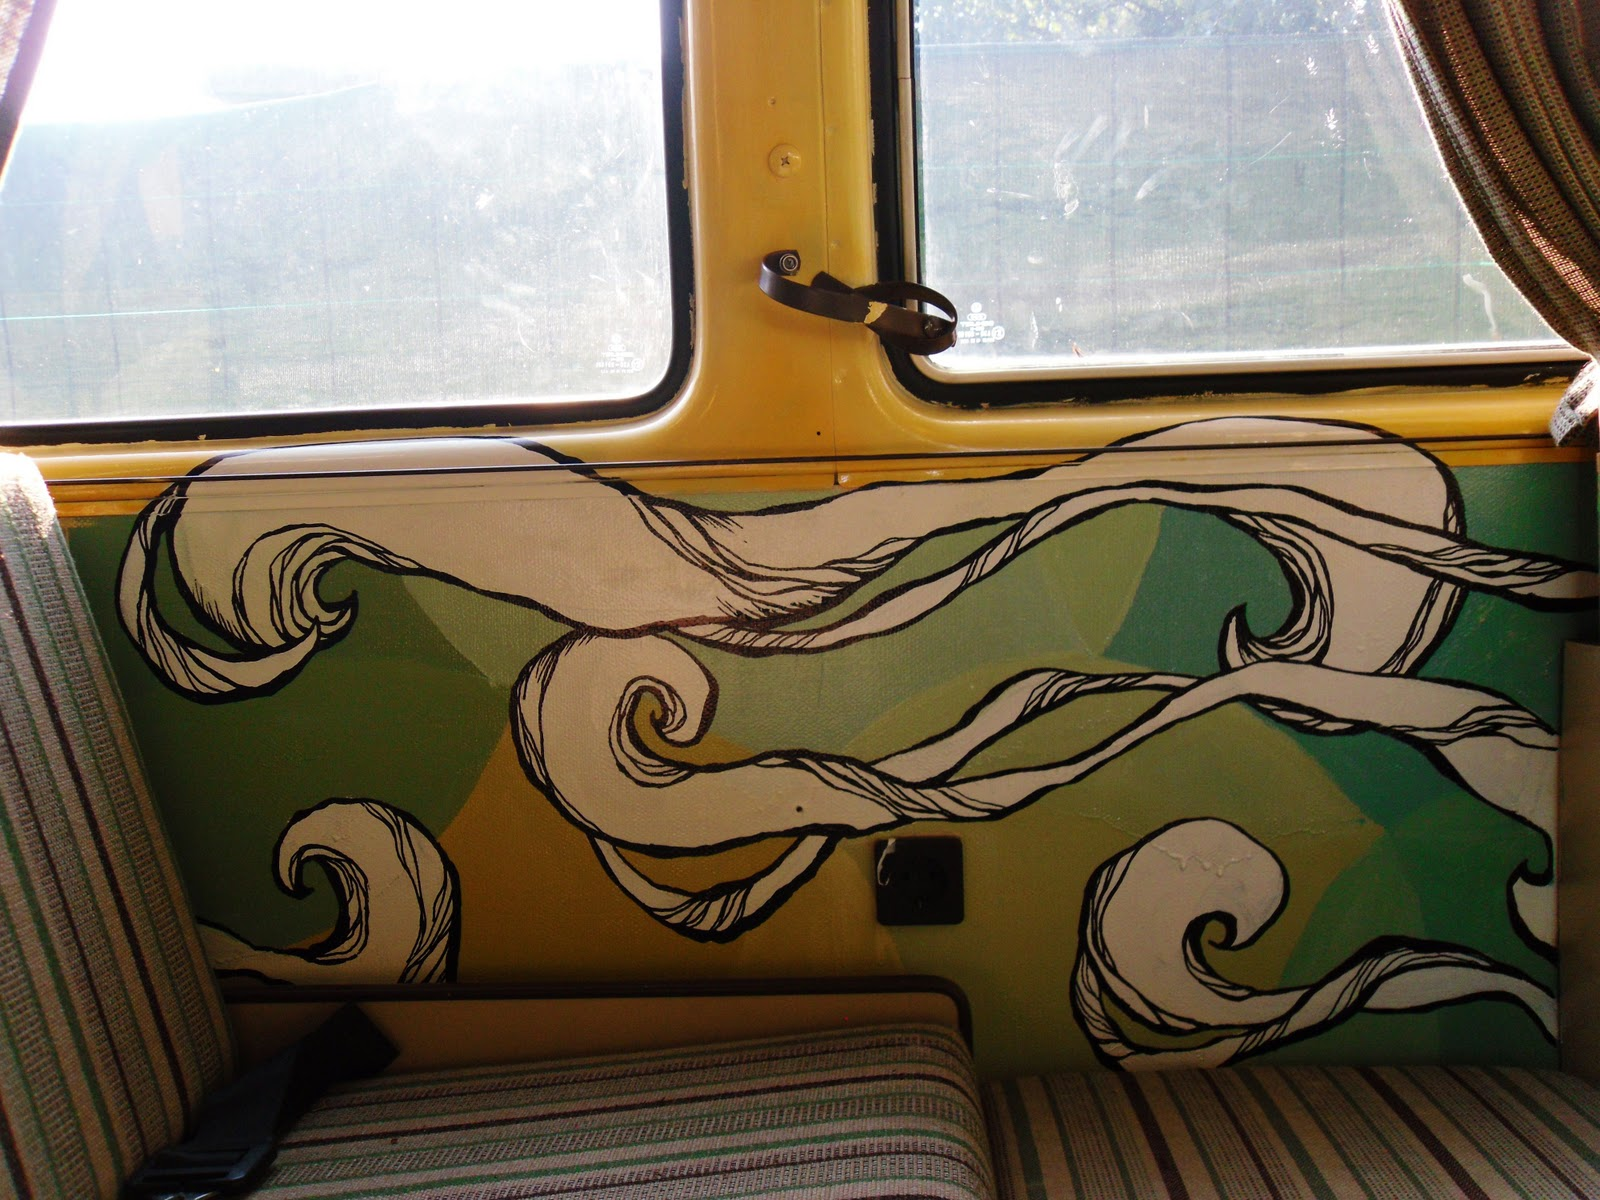 Sketchy notions the magic bus for Brandon boyd mural